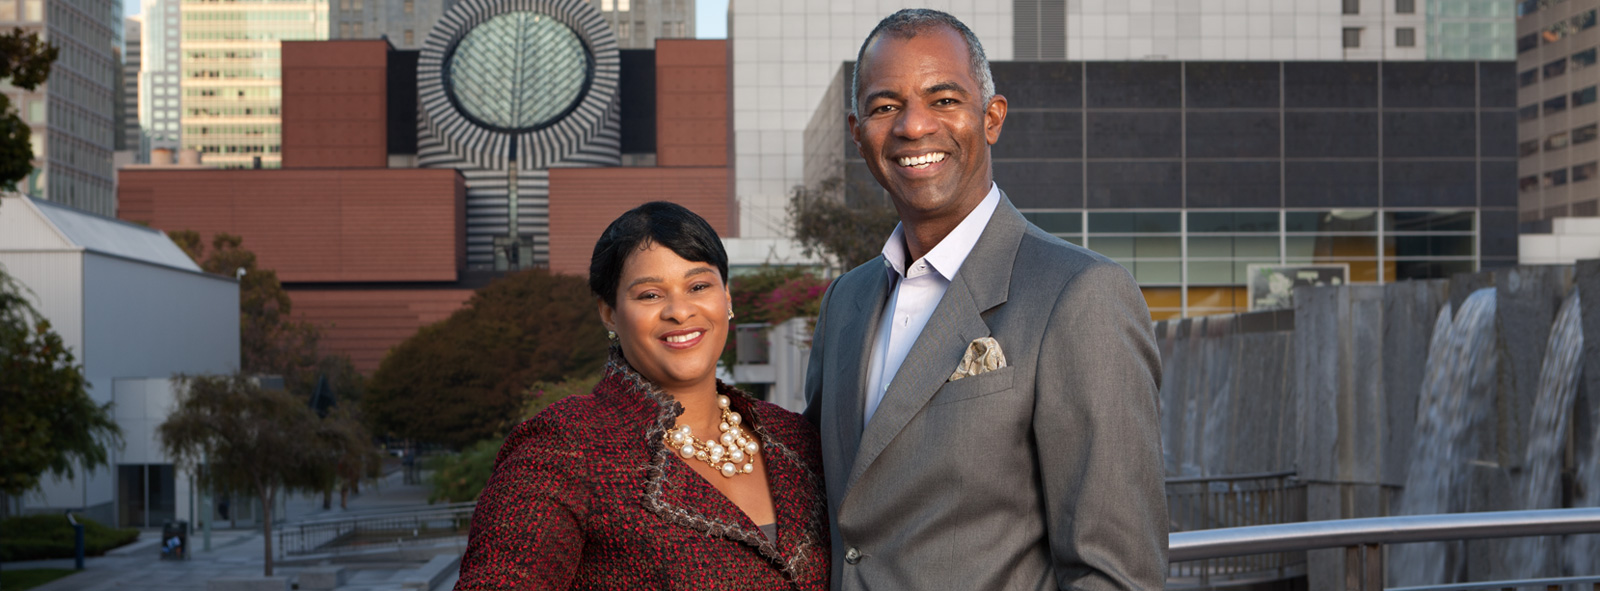 Image of First Republic Philanthropists / Volunteers client(s) N. Anthony Coles, M.D. and Robyn Coles